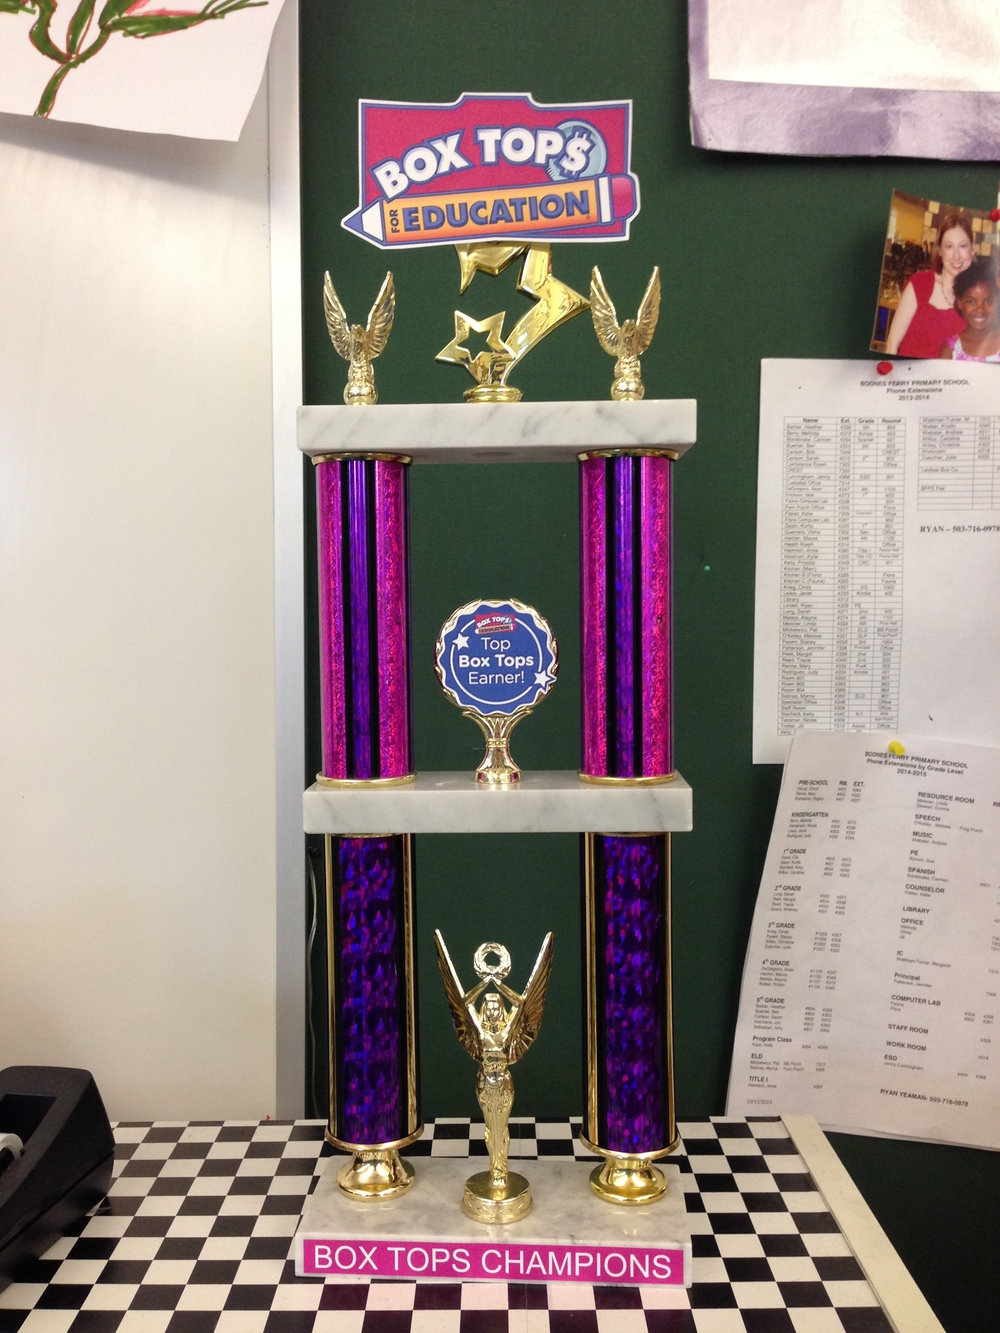 OUR NEW TRAVELING TROPHY AWARDED TO THE WINNERS OF THE CONTESTS!